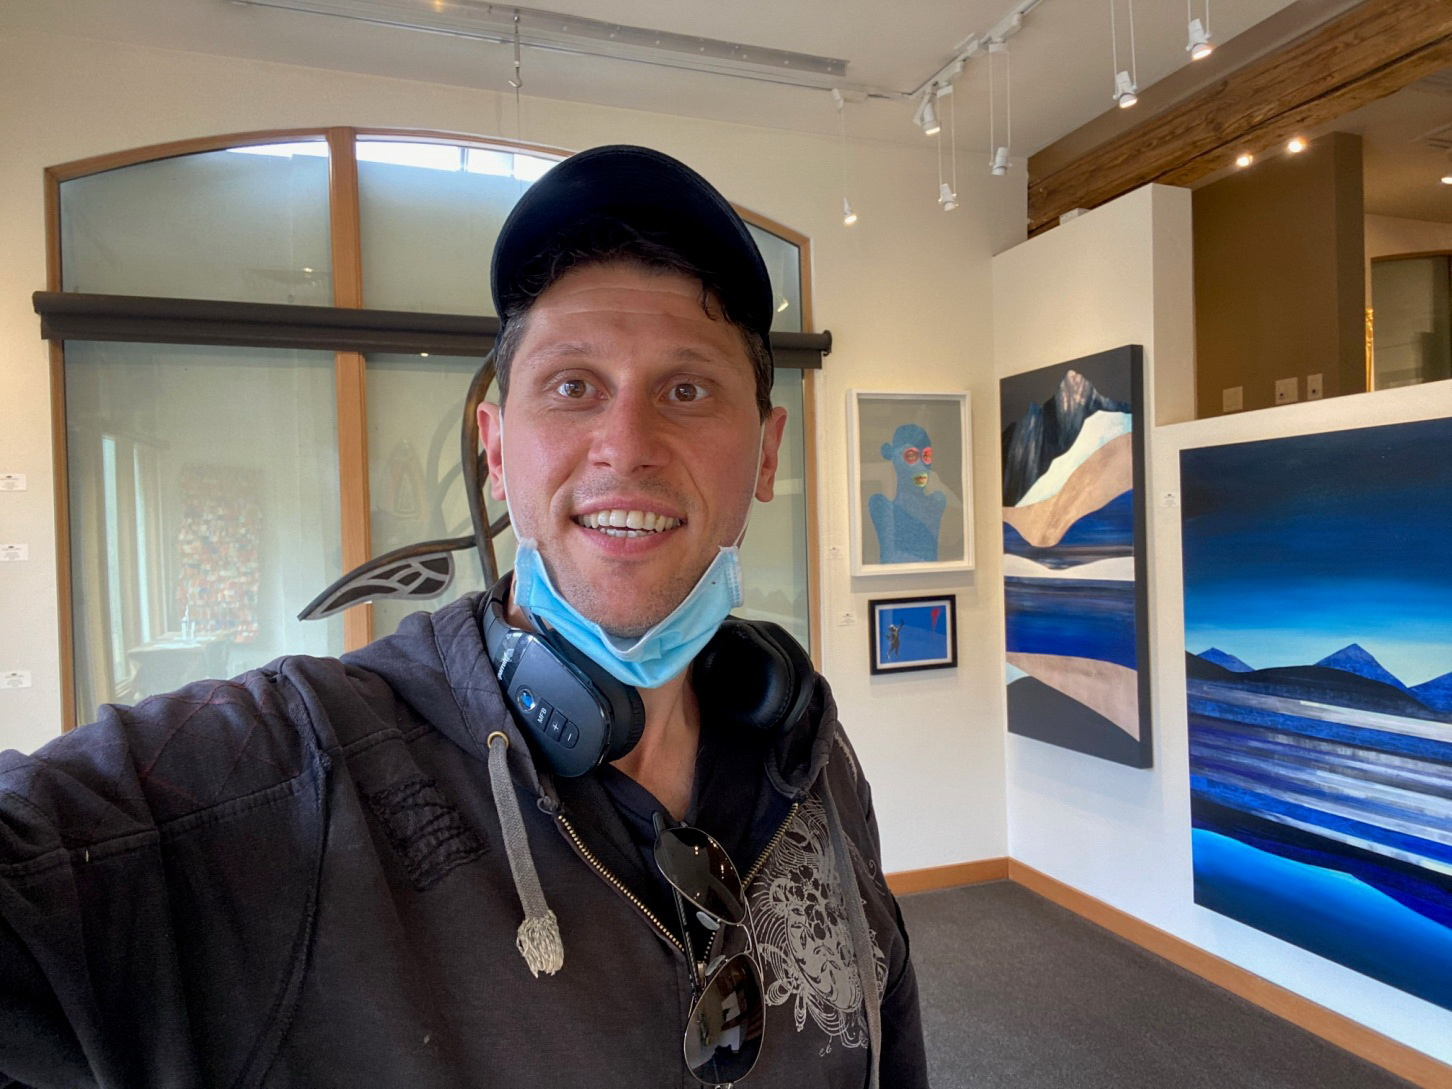 Working in Vail, a Unique Ski Resort Filled with Art